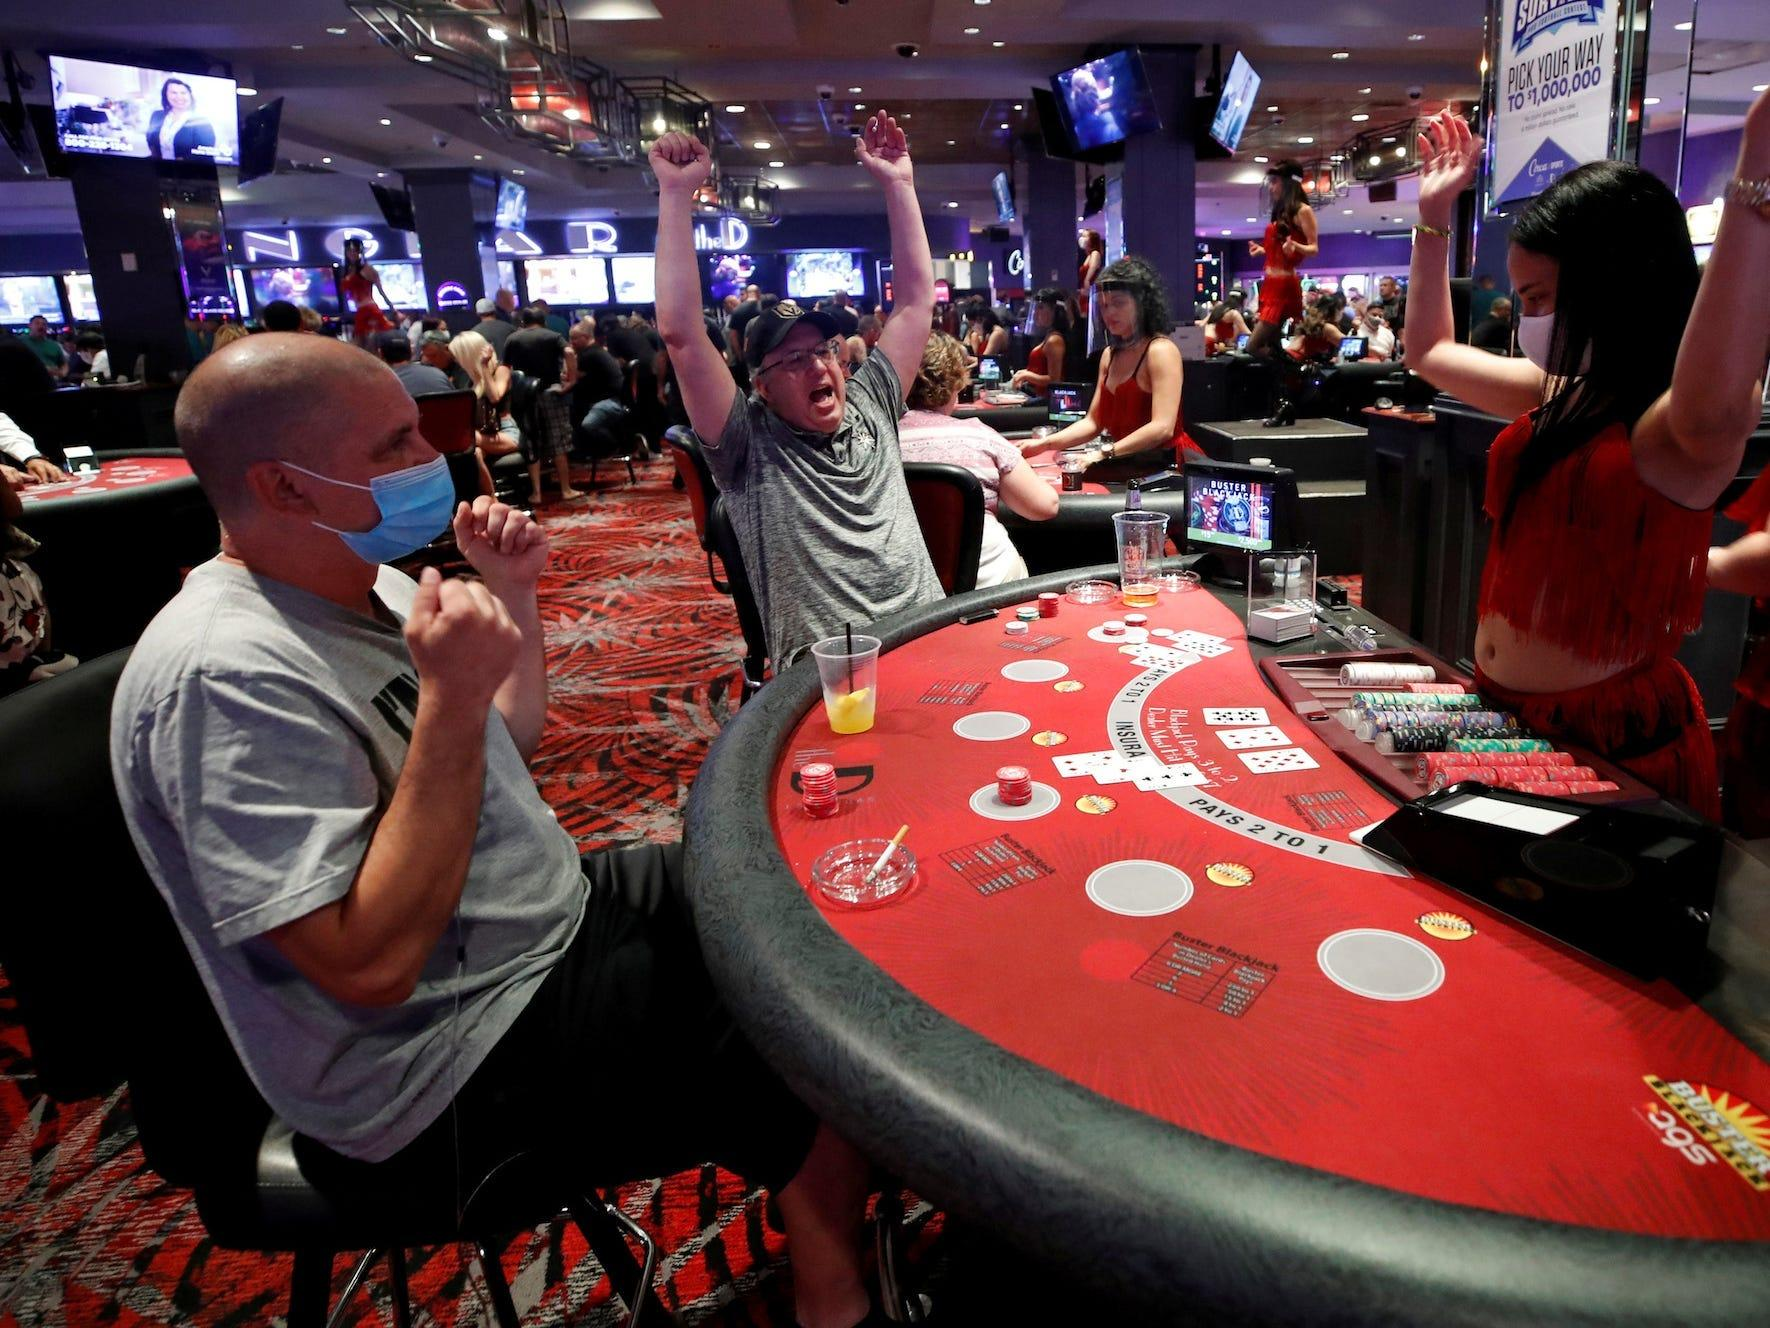 Online poker and casino games have tripled their revenue from last year as  real-world casinos shut their doors | Business Insider India